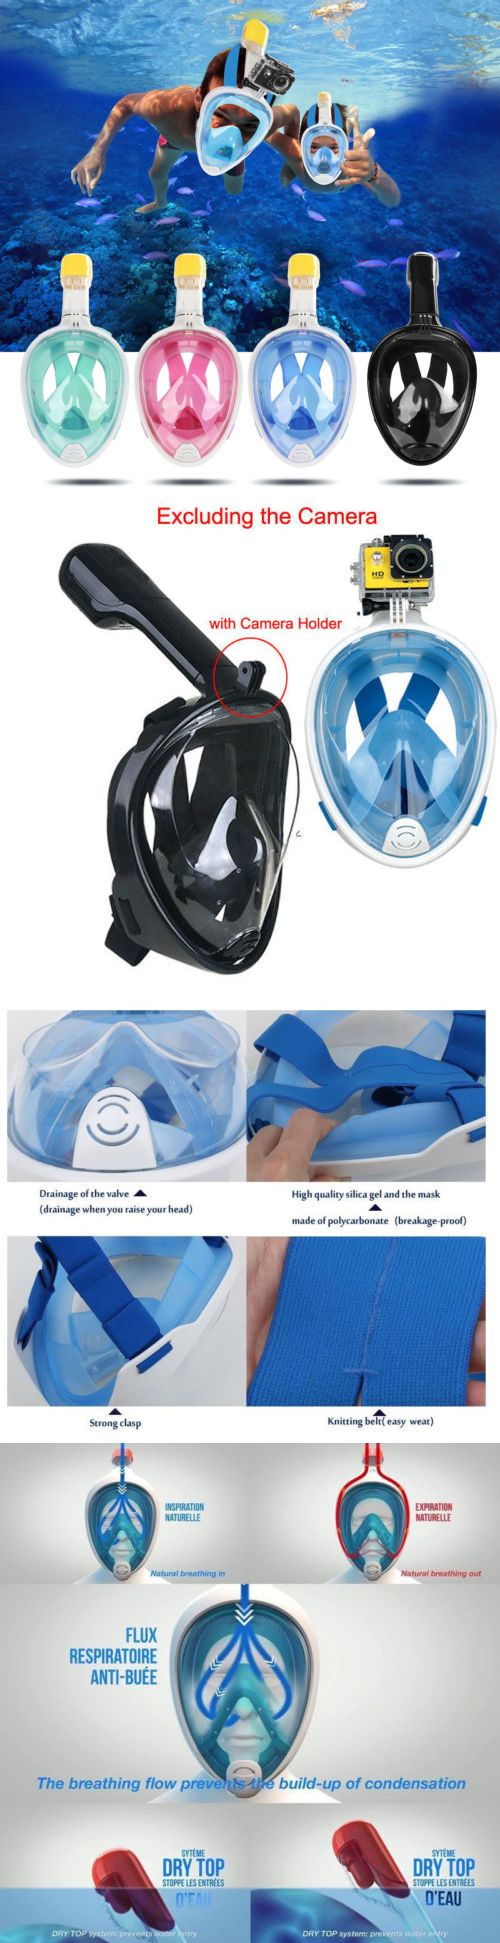 Masks 71161: Full Face Scuba Diving Mask Snorkel Swimming Goggles Breathing Underwater Tools -> BUY IT NOW ONLY: $49.99 on eBay!